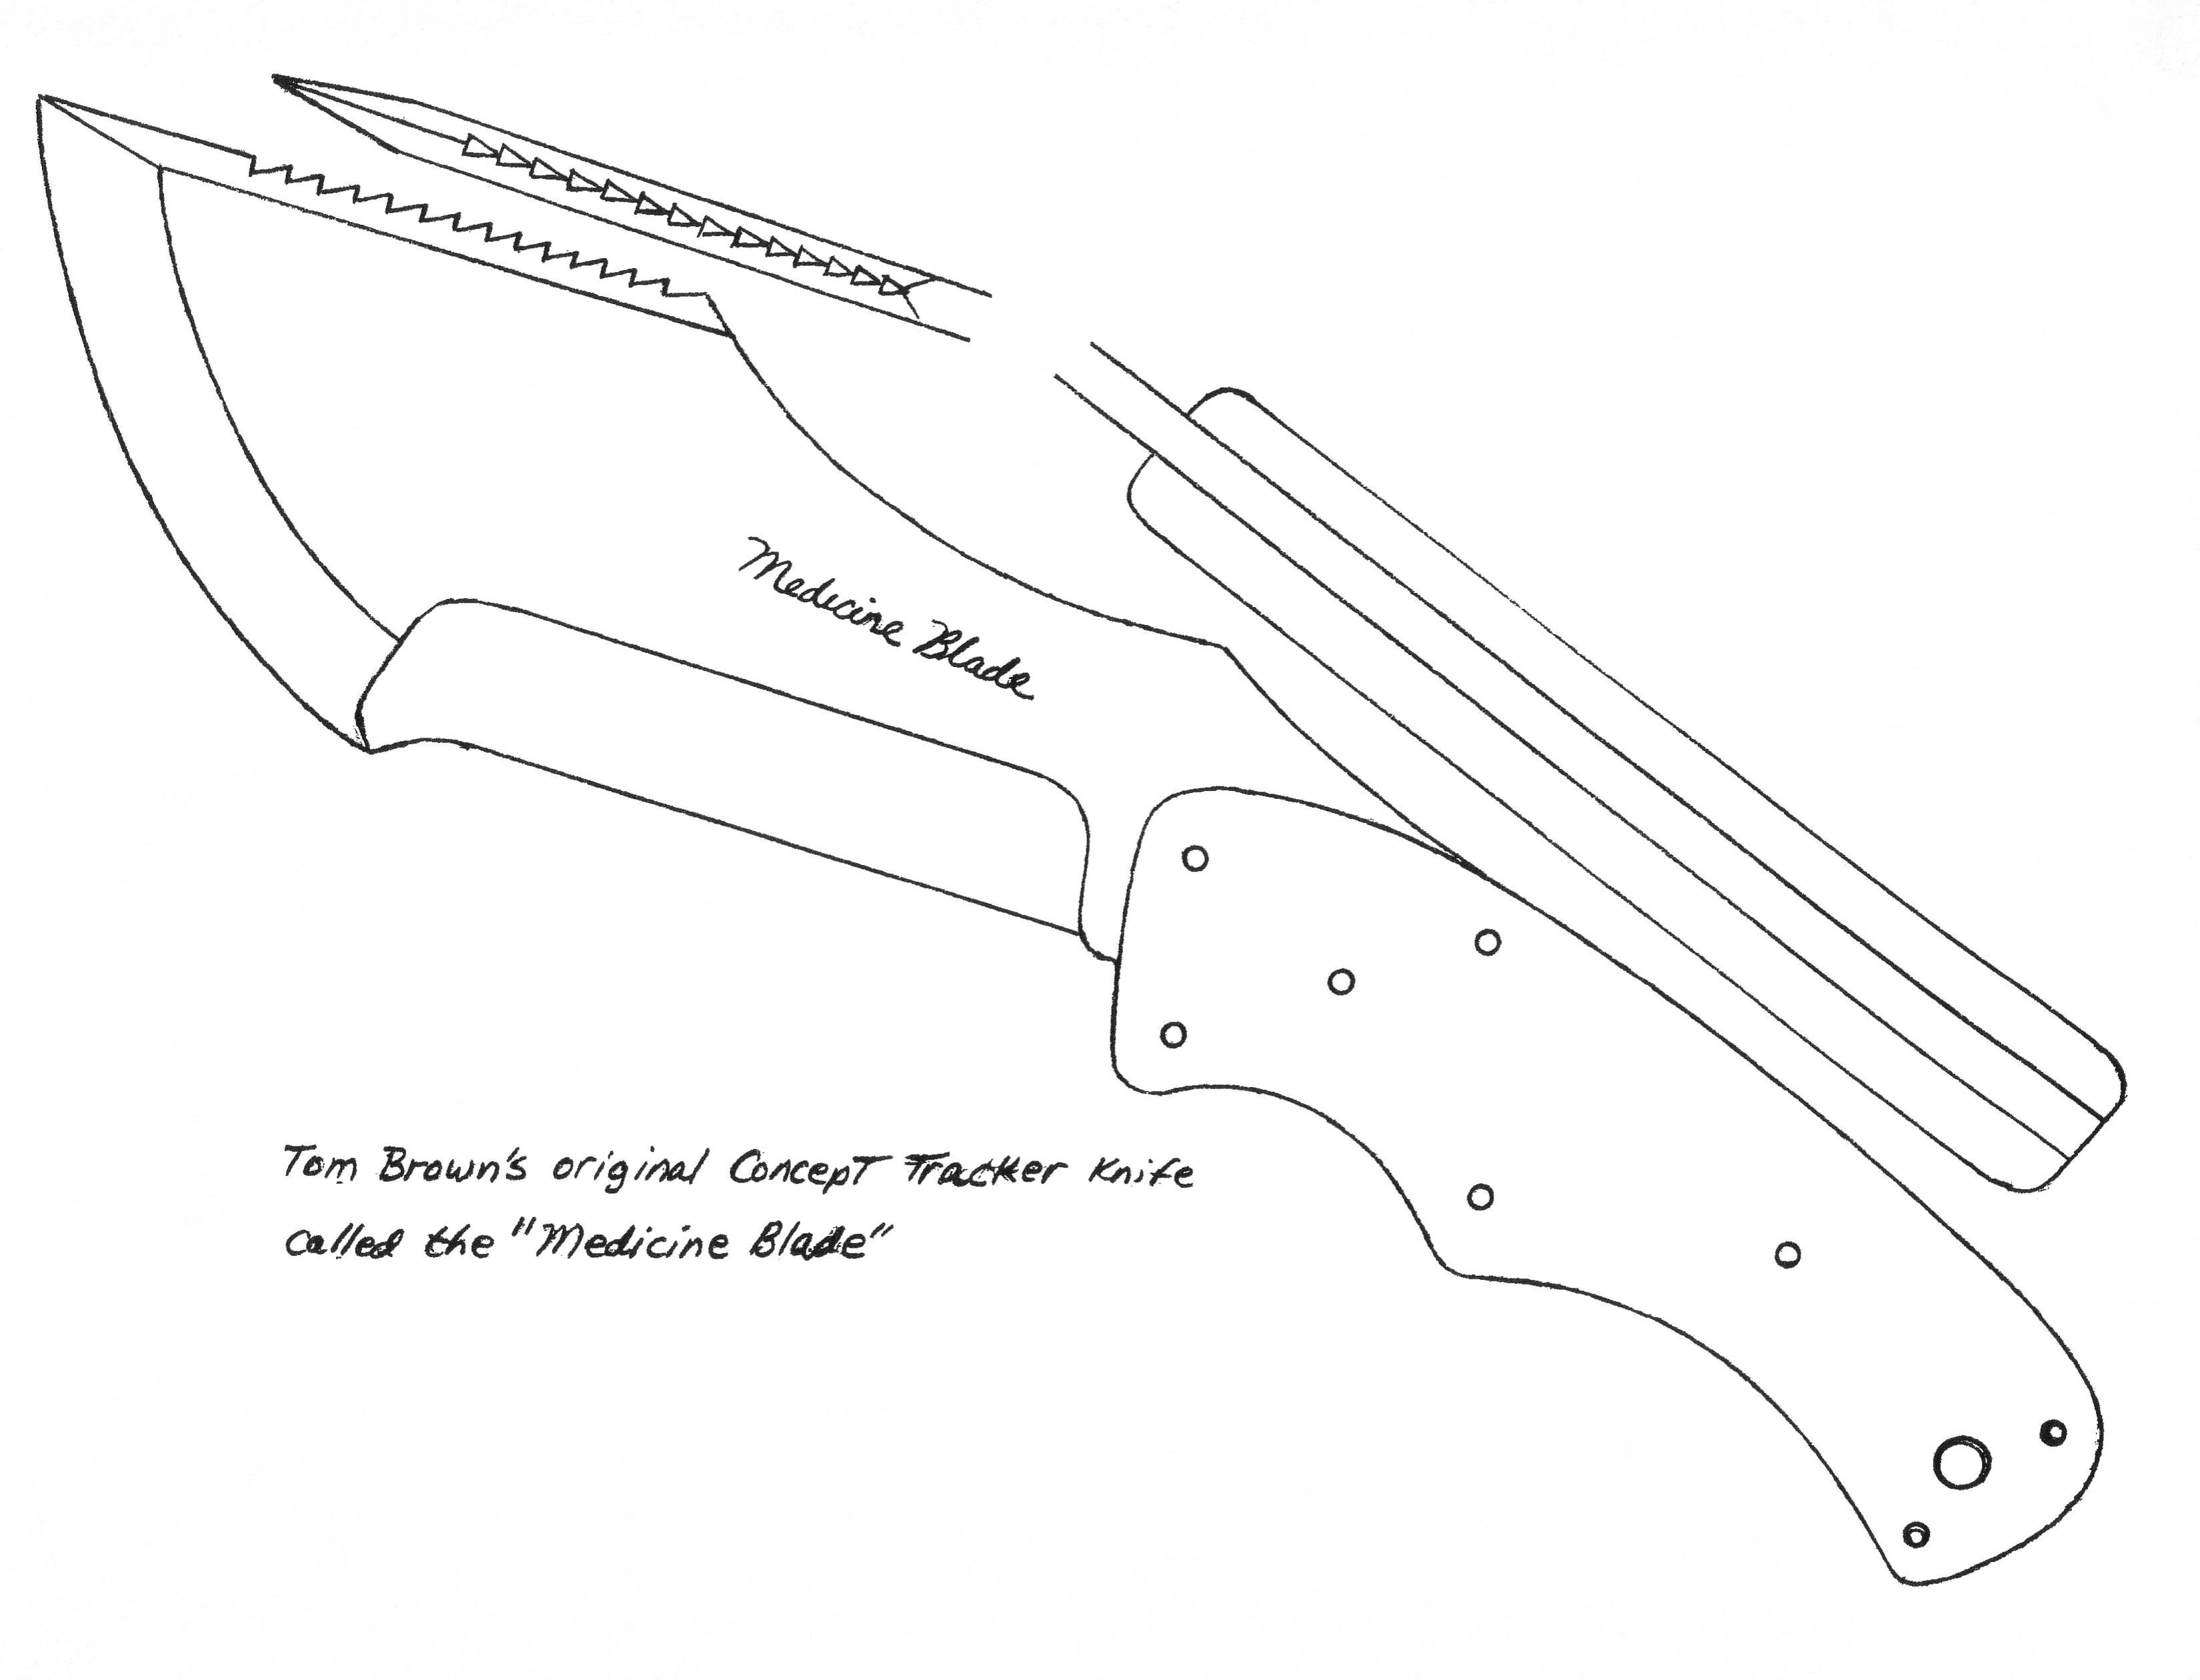 Blade templates | Beck, The Real Tracker Story | Knife shapes ...